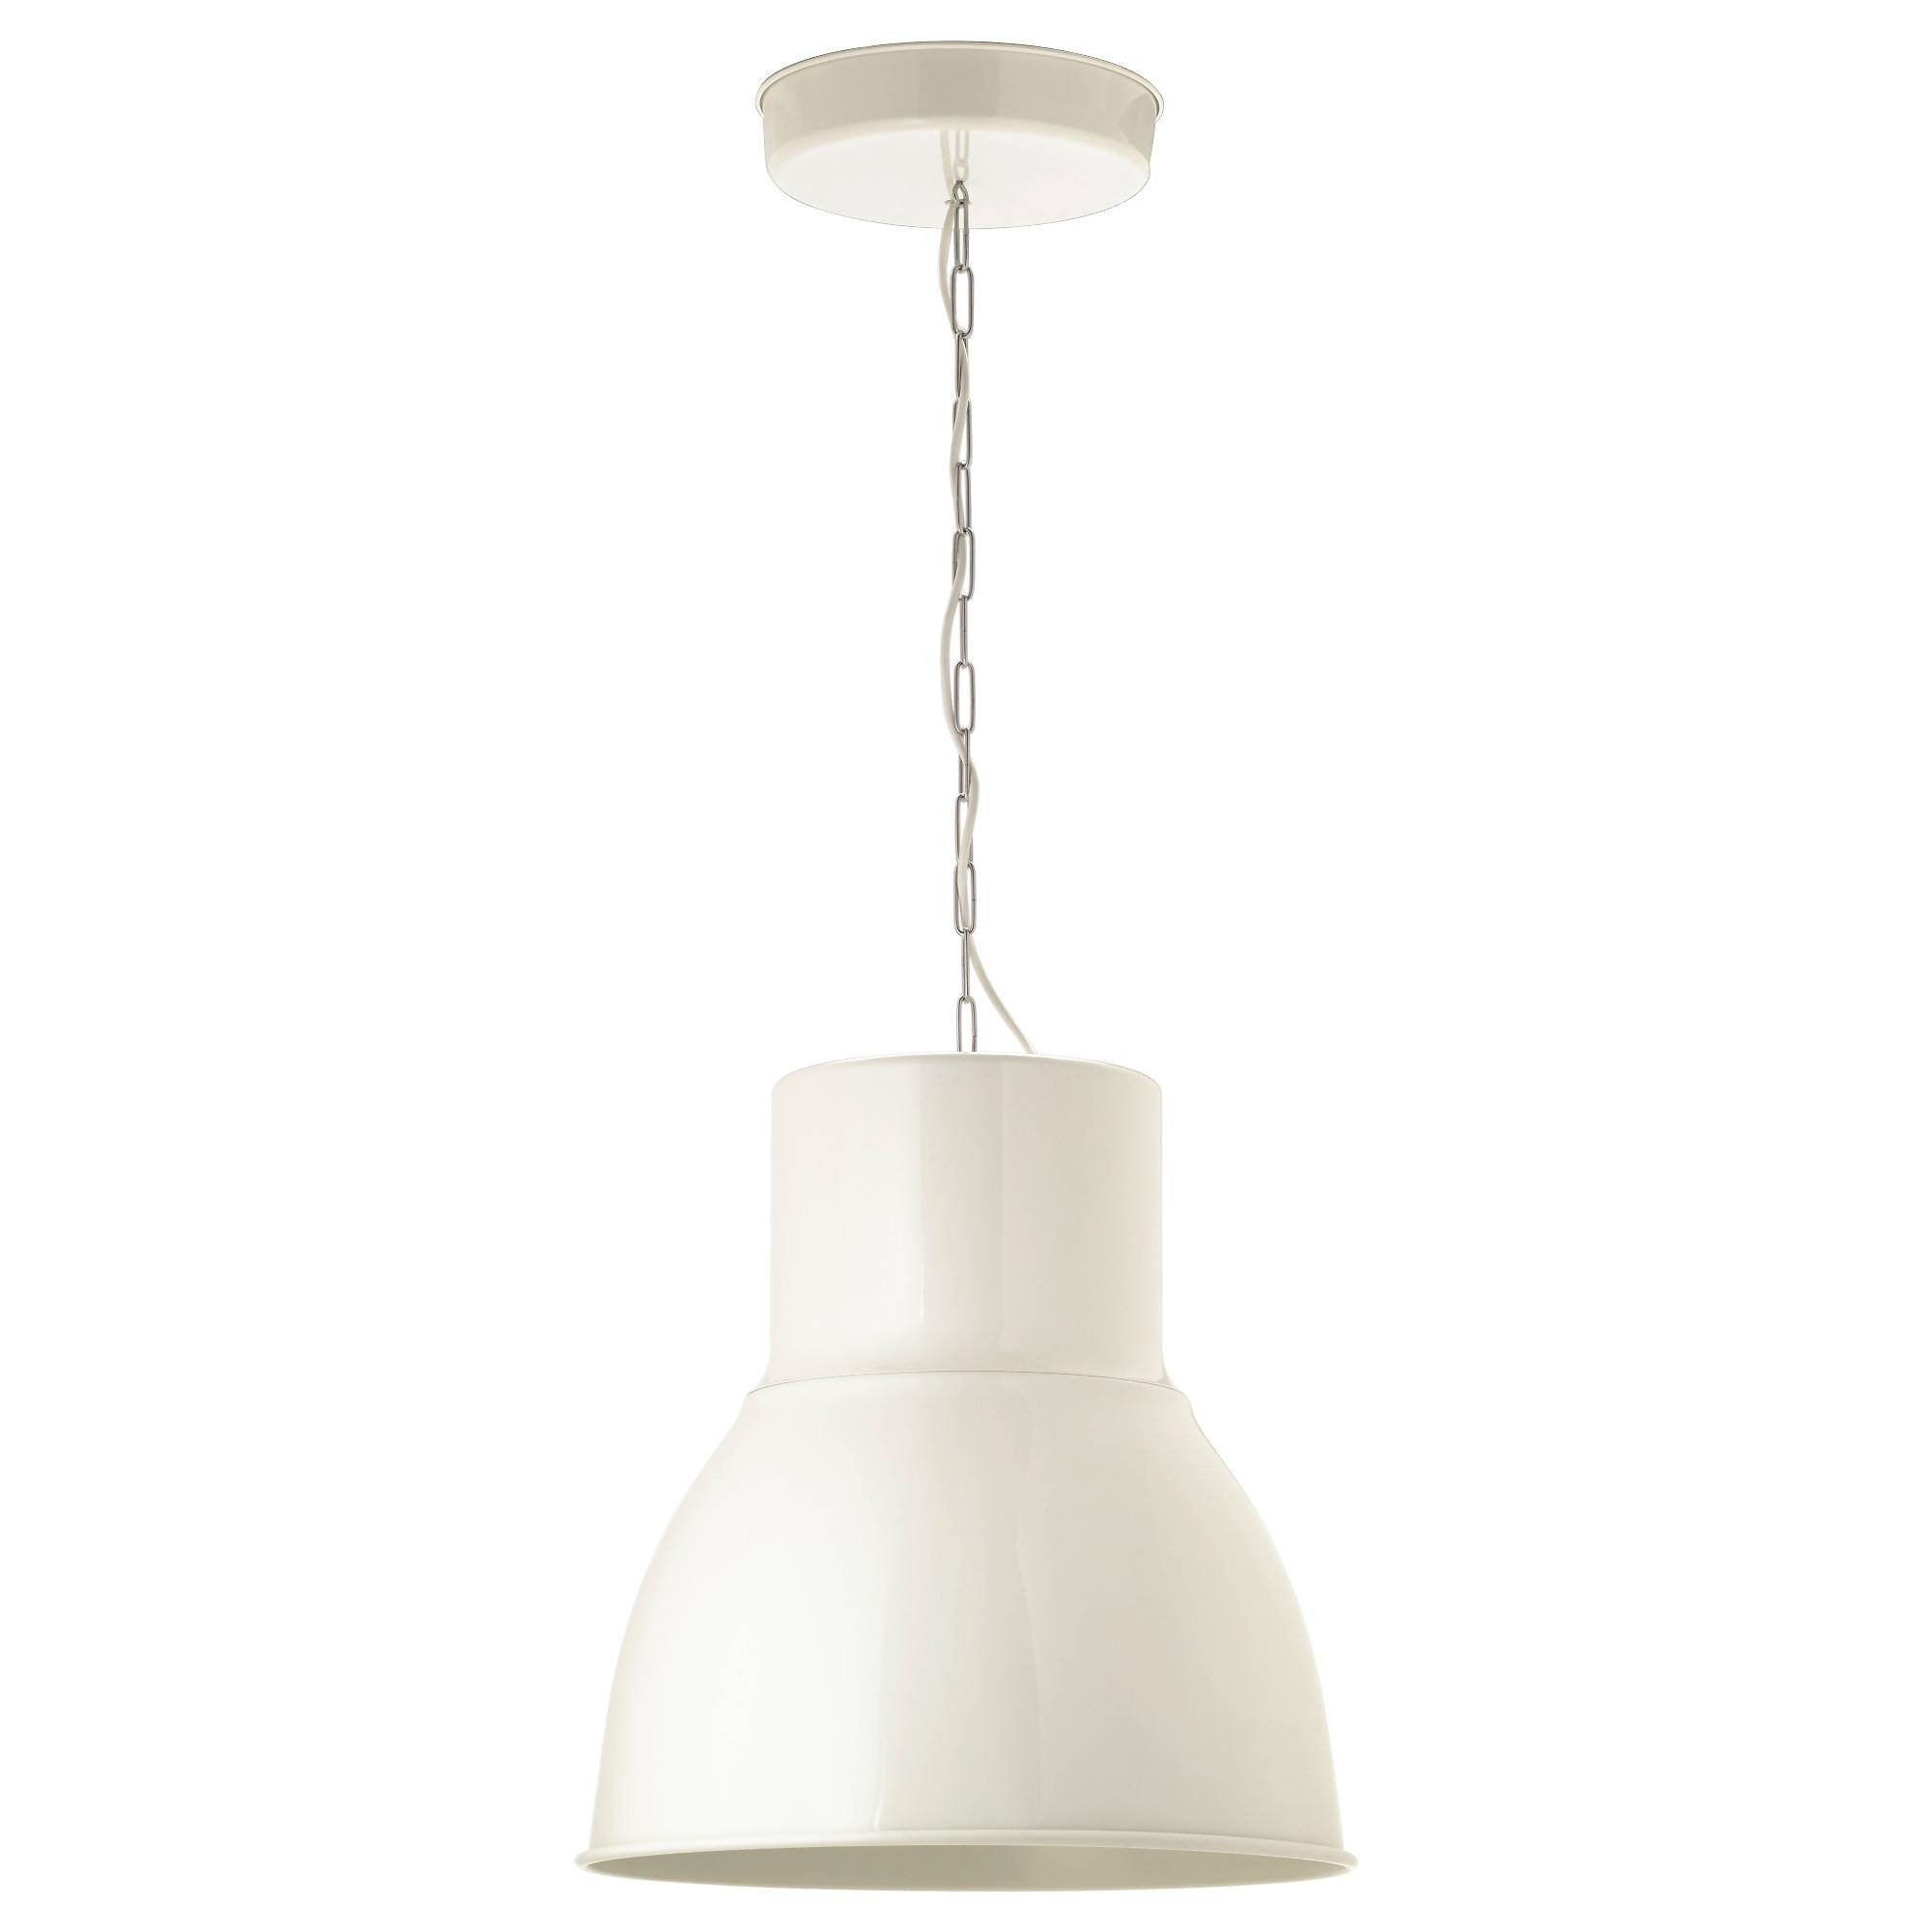 Ceiling Lights & Lamps - Ikea with regard to Ikea Pendant Lights (Image 2 of 15)